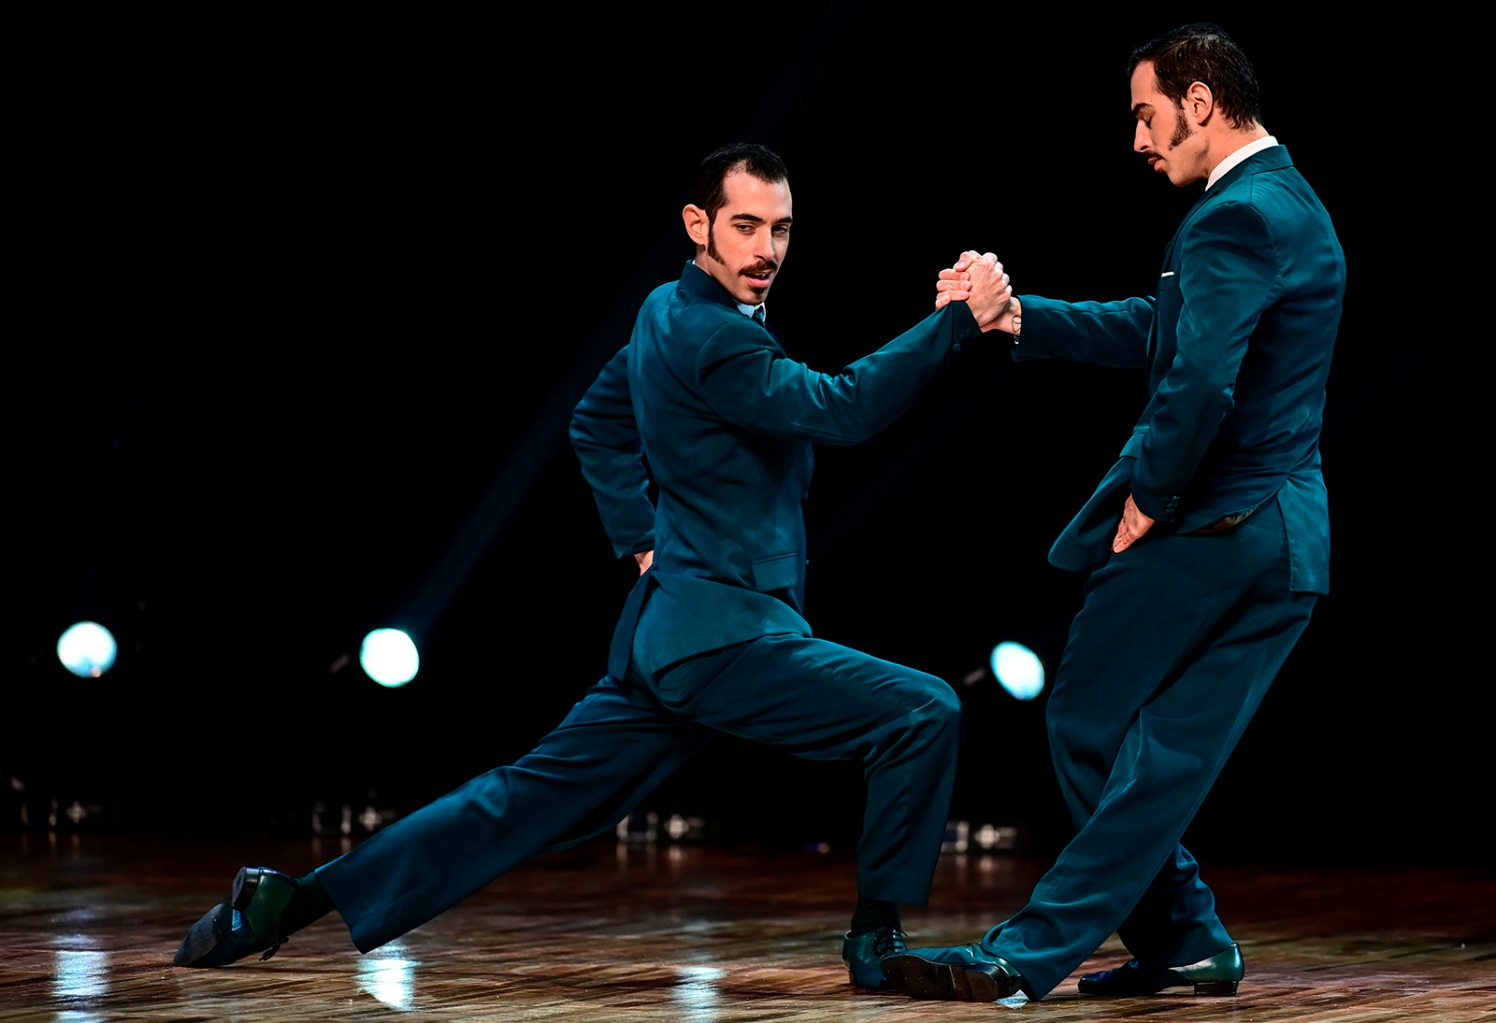 Argentinian twin dancers Nicolas Filipeli and German Filipeli perform at the Tango Dance World Championship in Buenos Aires on Aug. 21. RONALDO SCHEMIDT/AFP/Getty Images